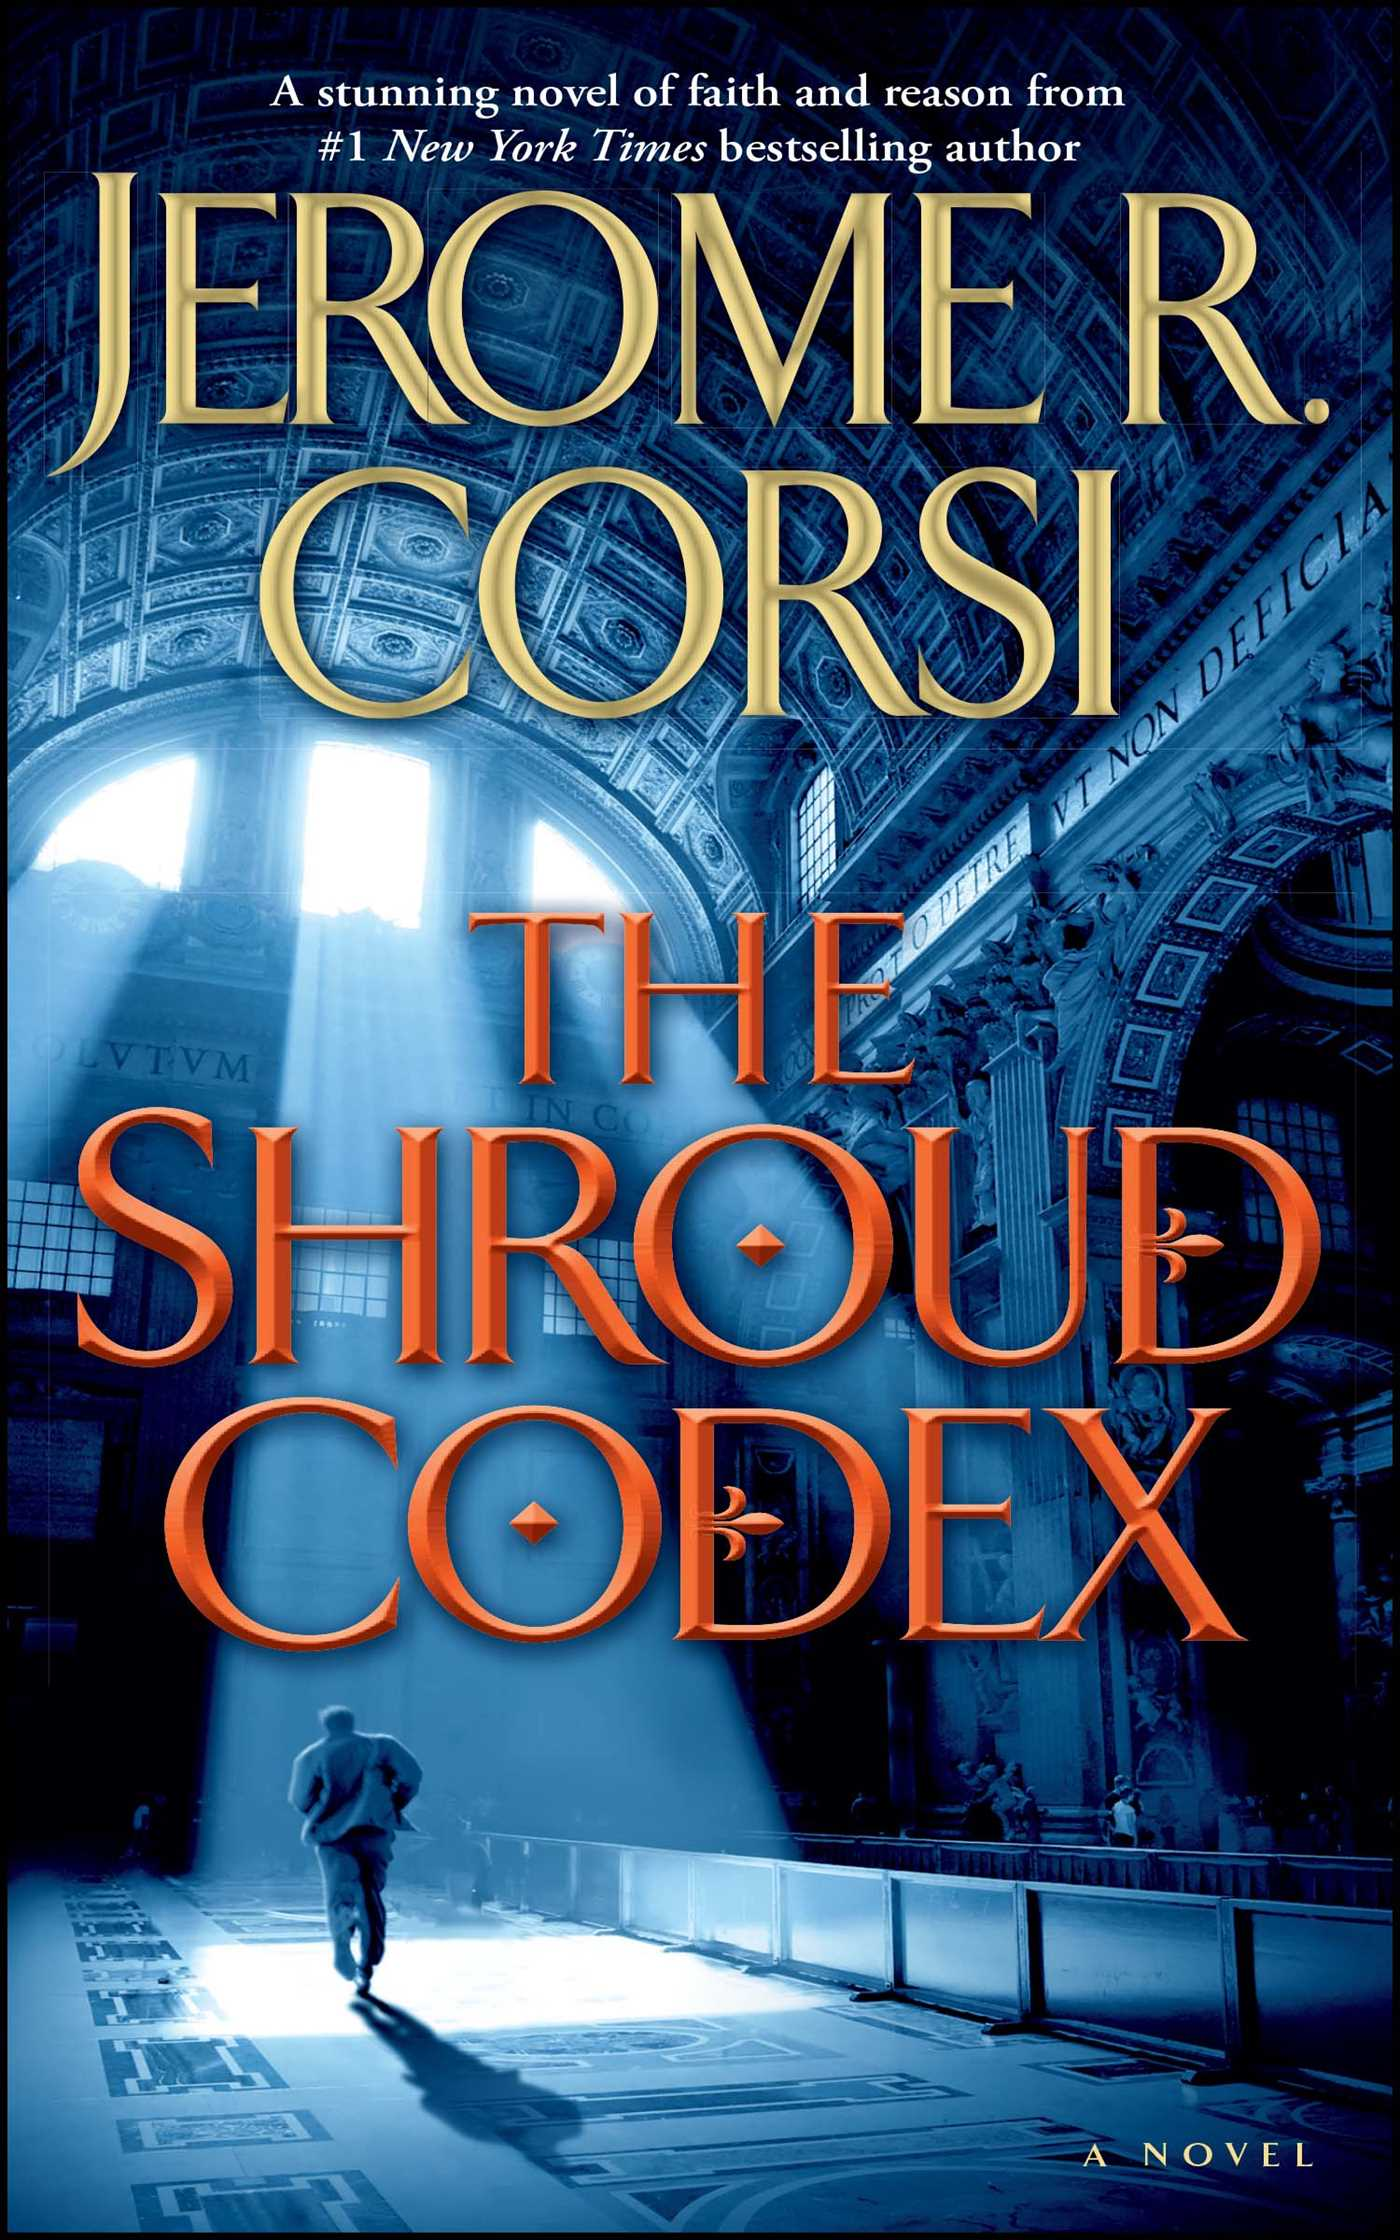 The-shroud-codex-9781439190456_hr